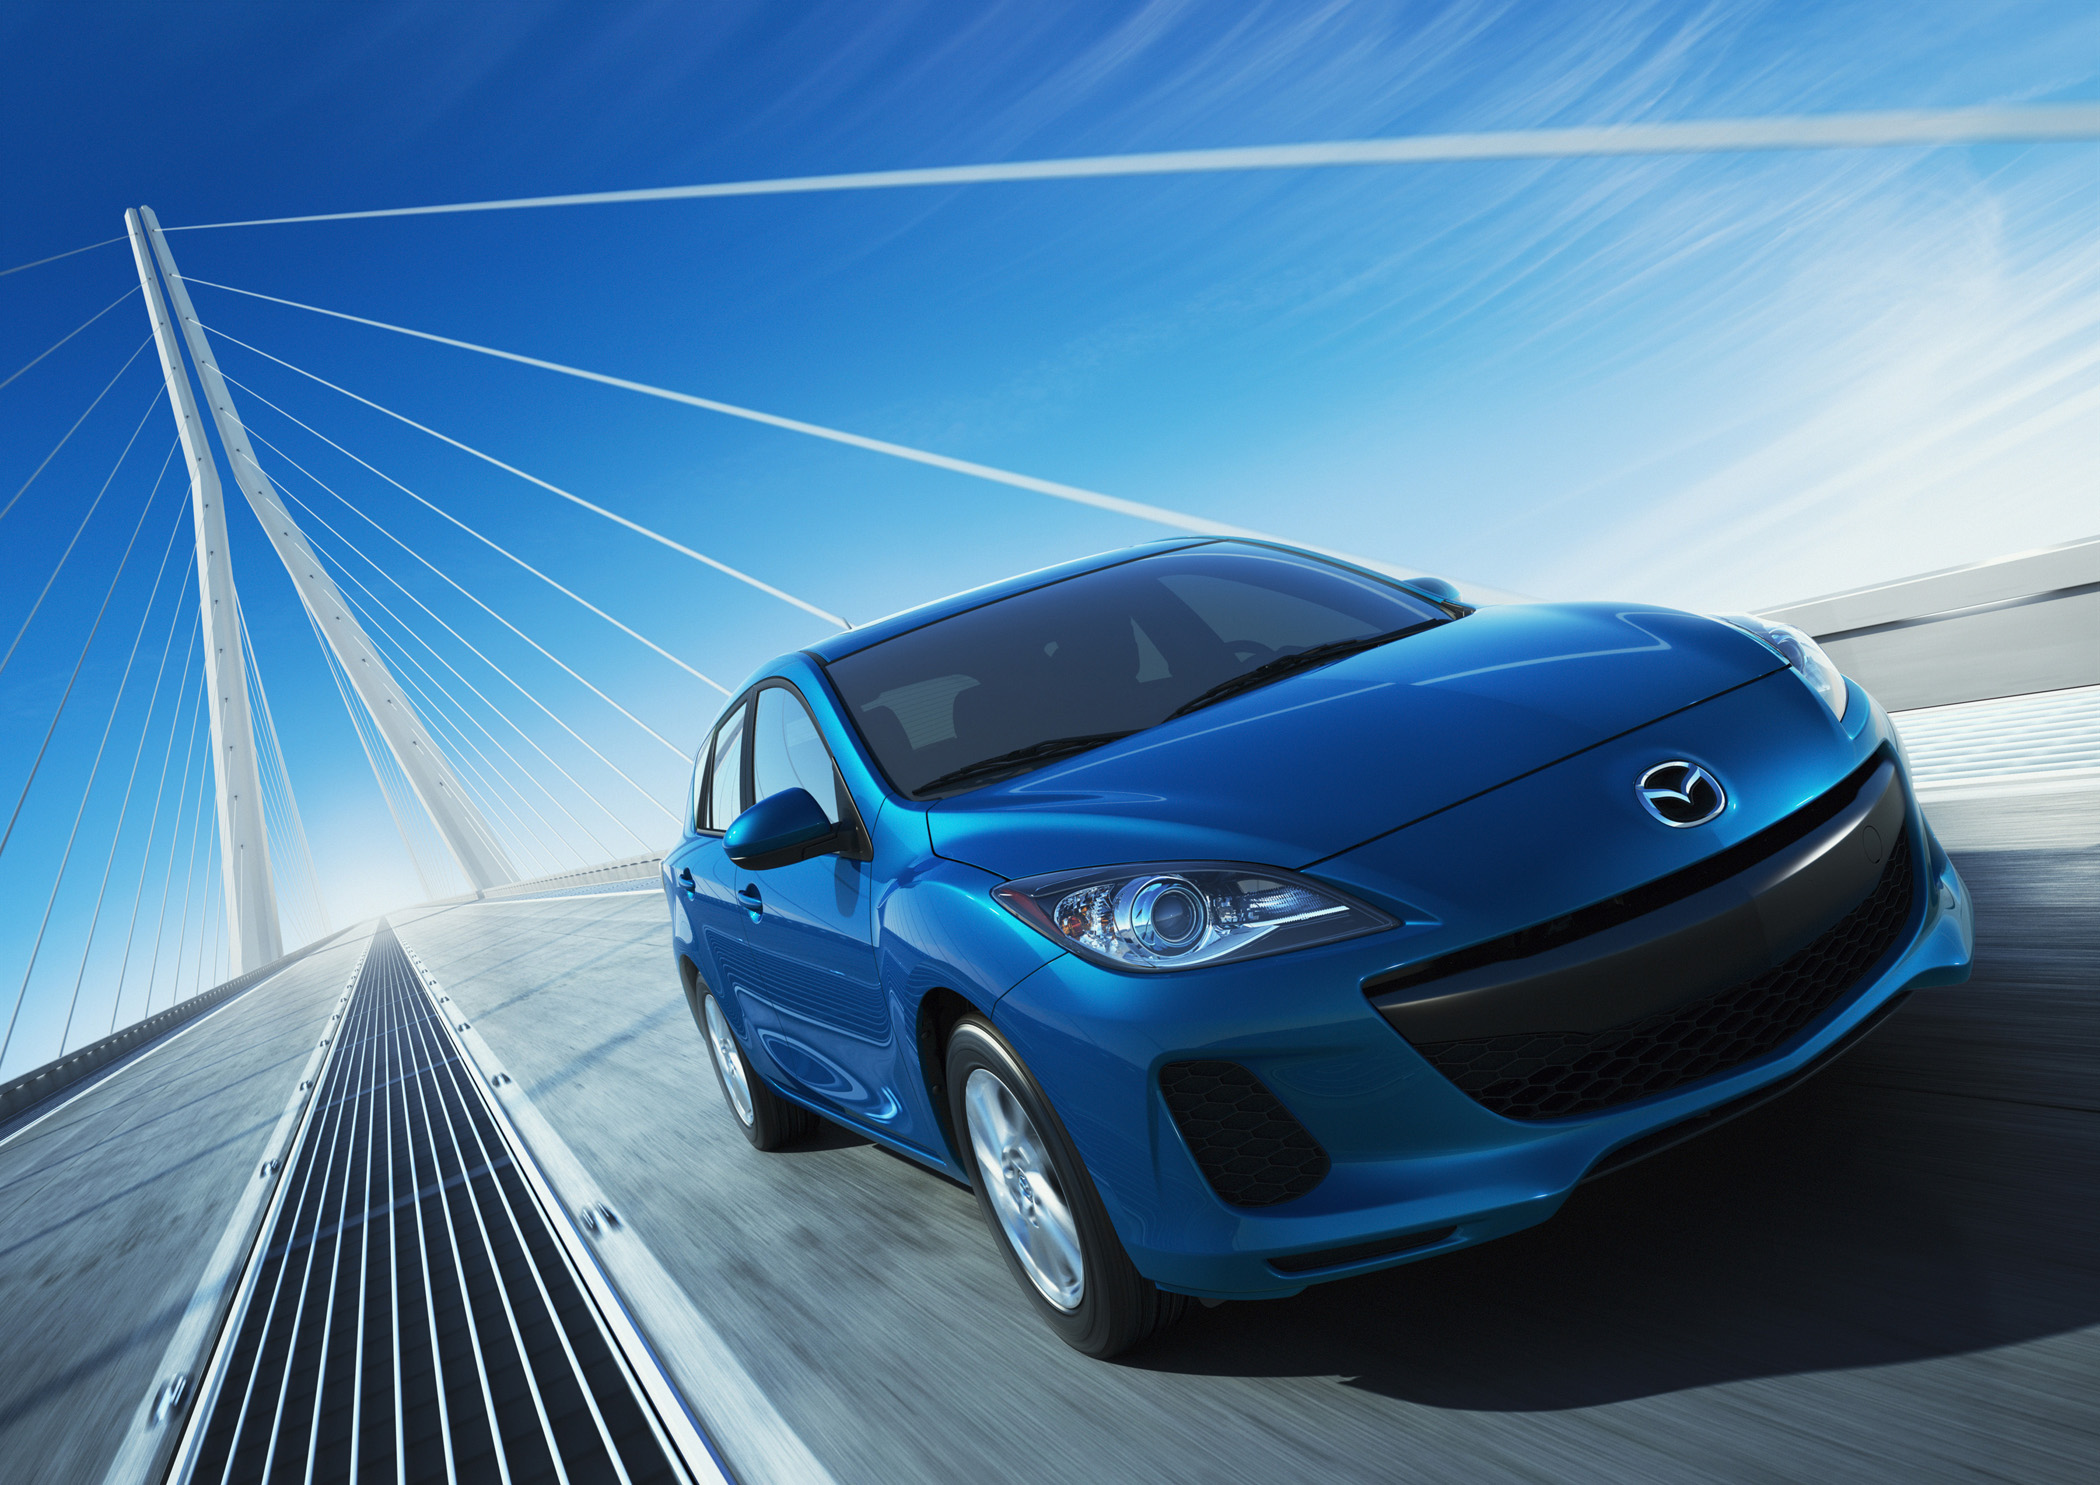 The 2012 mazda3 includes the first use of the automaker s all new fuel efficient performance oriented skyactiv technology which delivers up to 21 percent